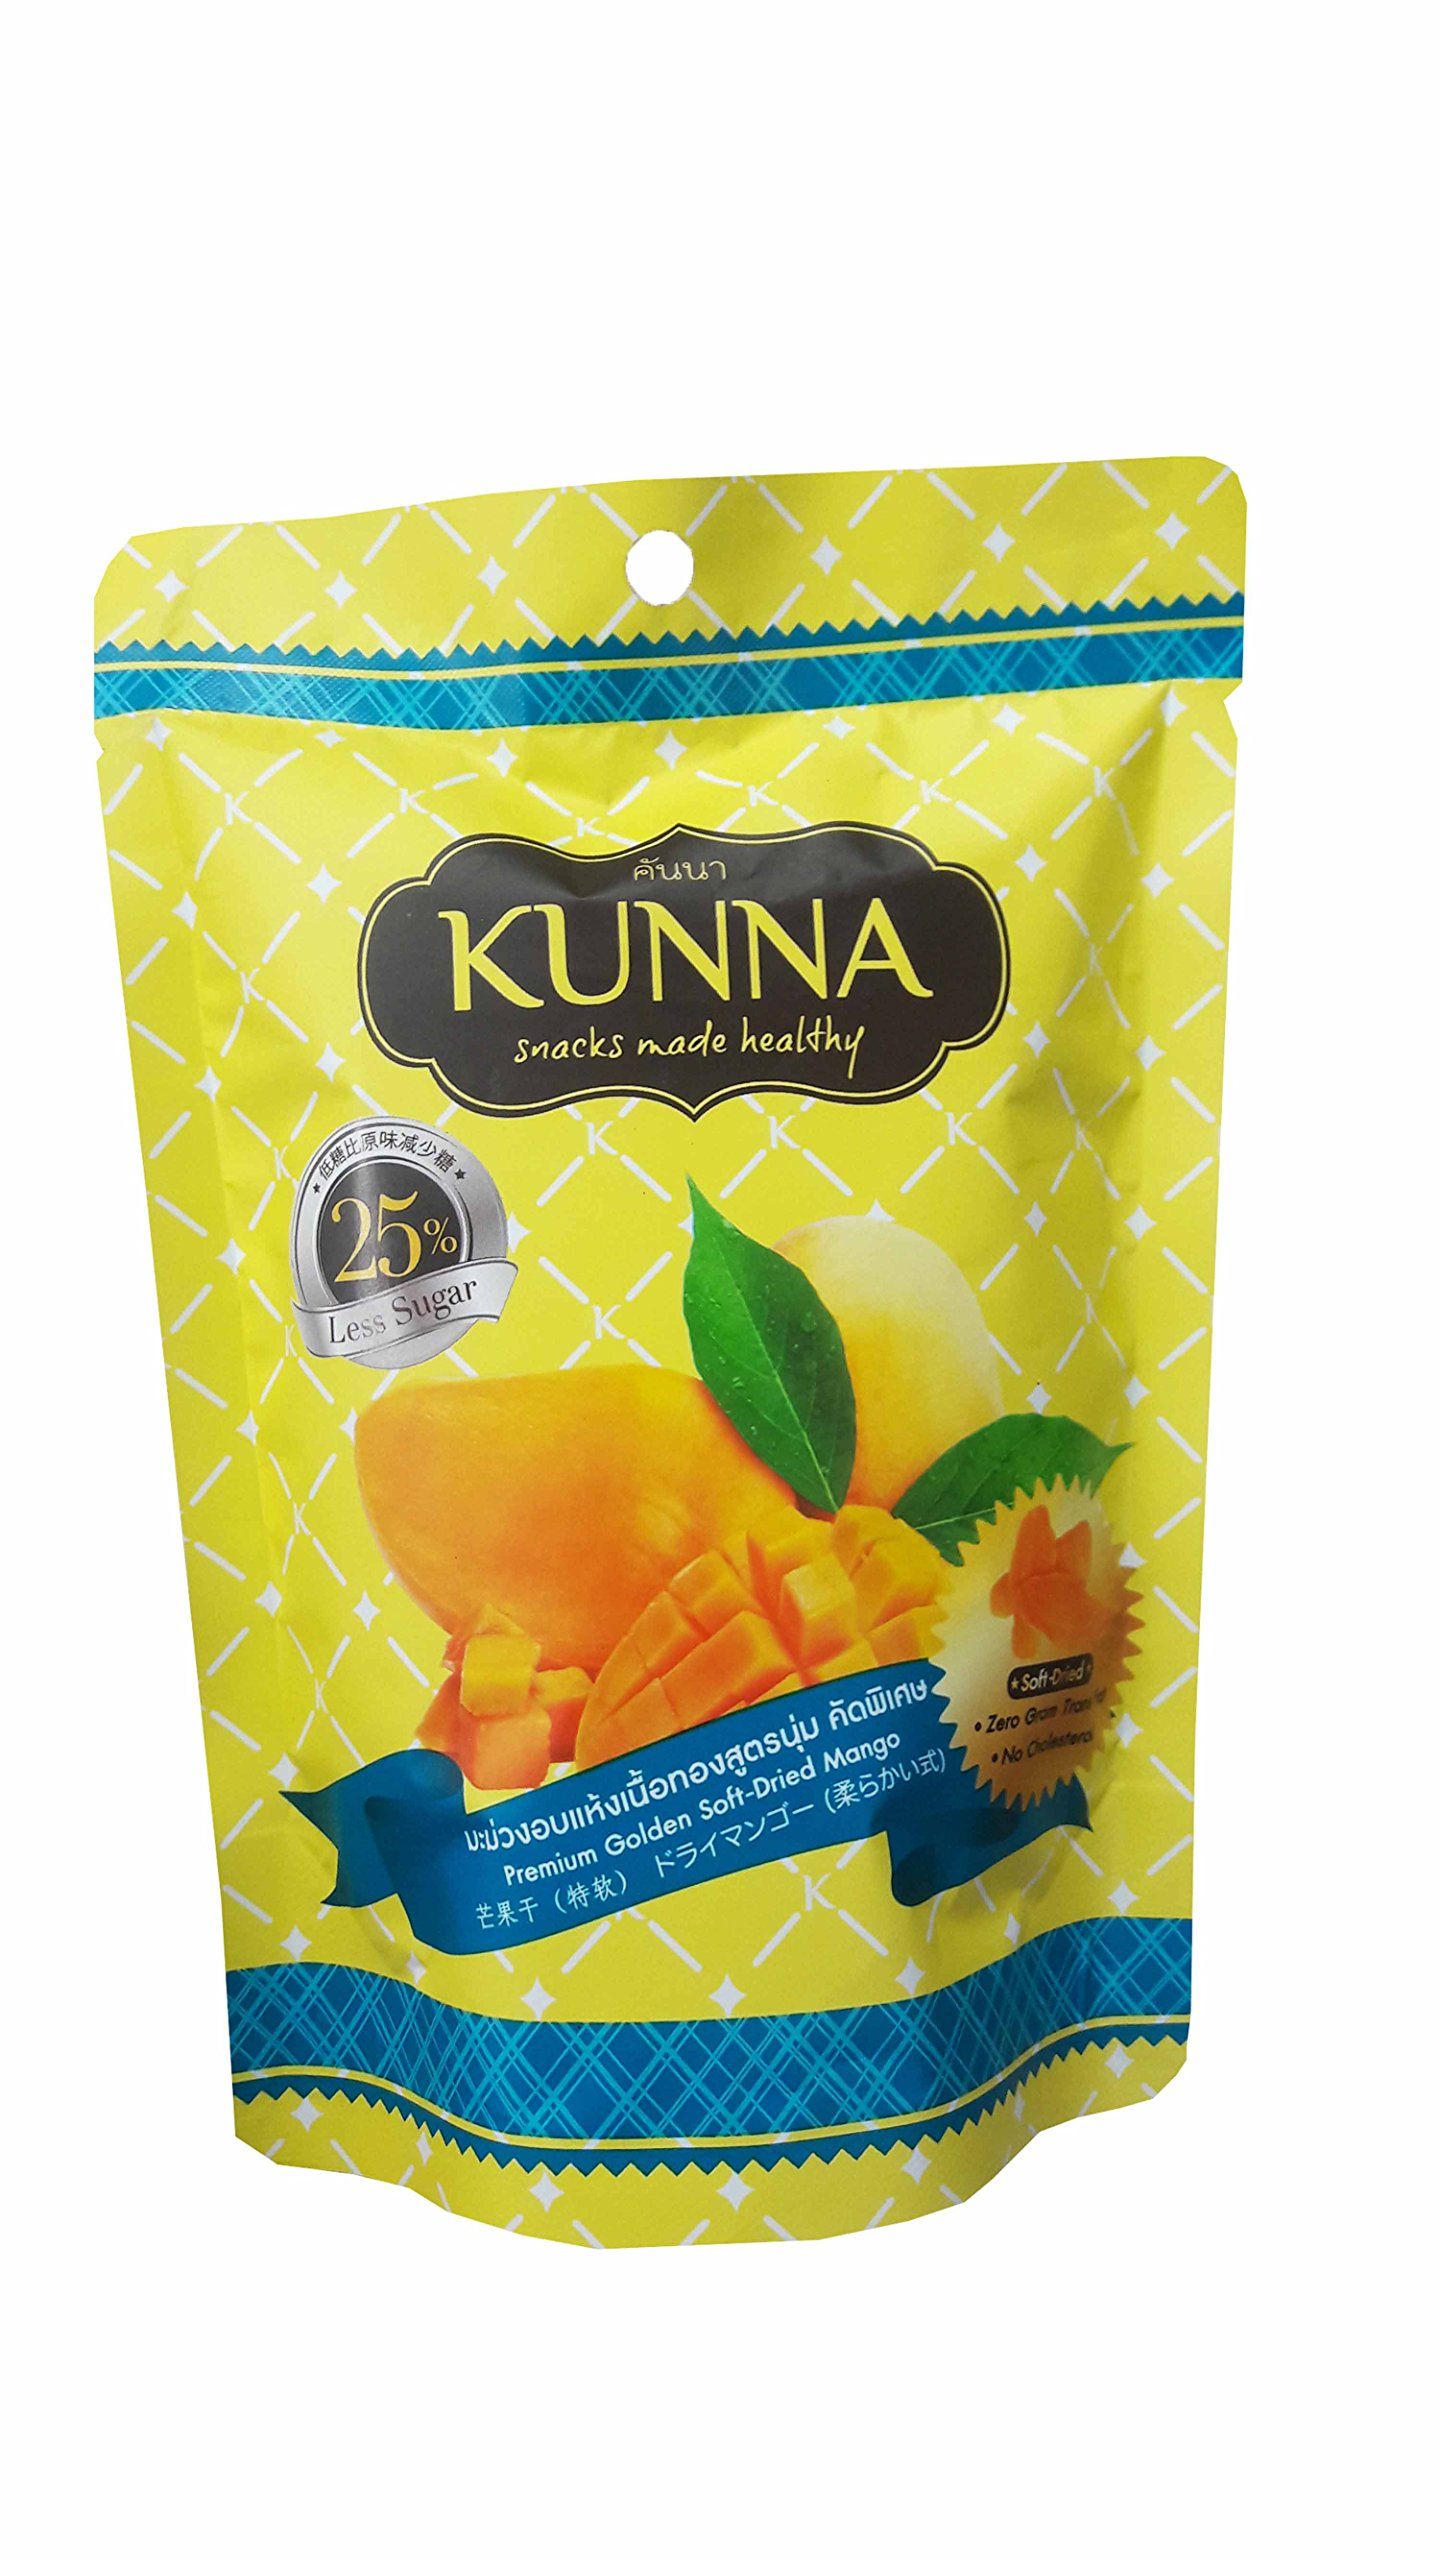 3 Packs of Premium Golden Soft-Dried Mango, snacks made healthy by kunna. Zero gram trans fat, No cholesterol & delicious, premium fruit snack from Thailand) (75 g/pack)